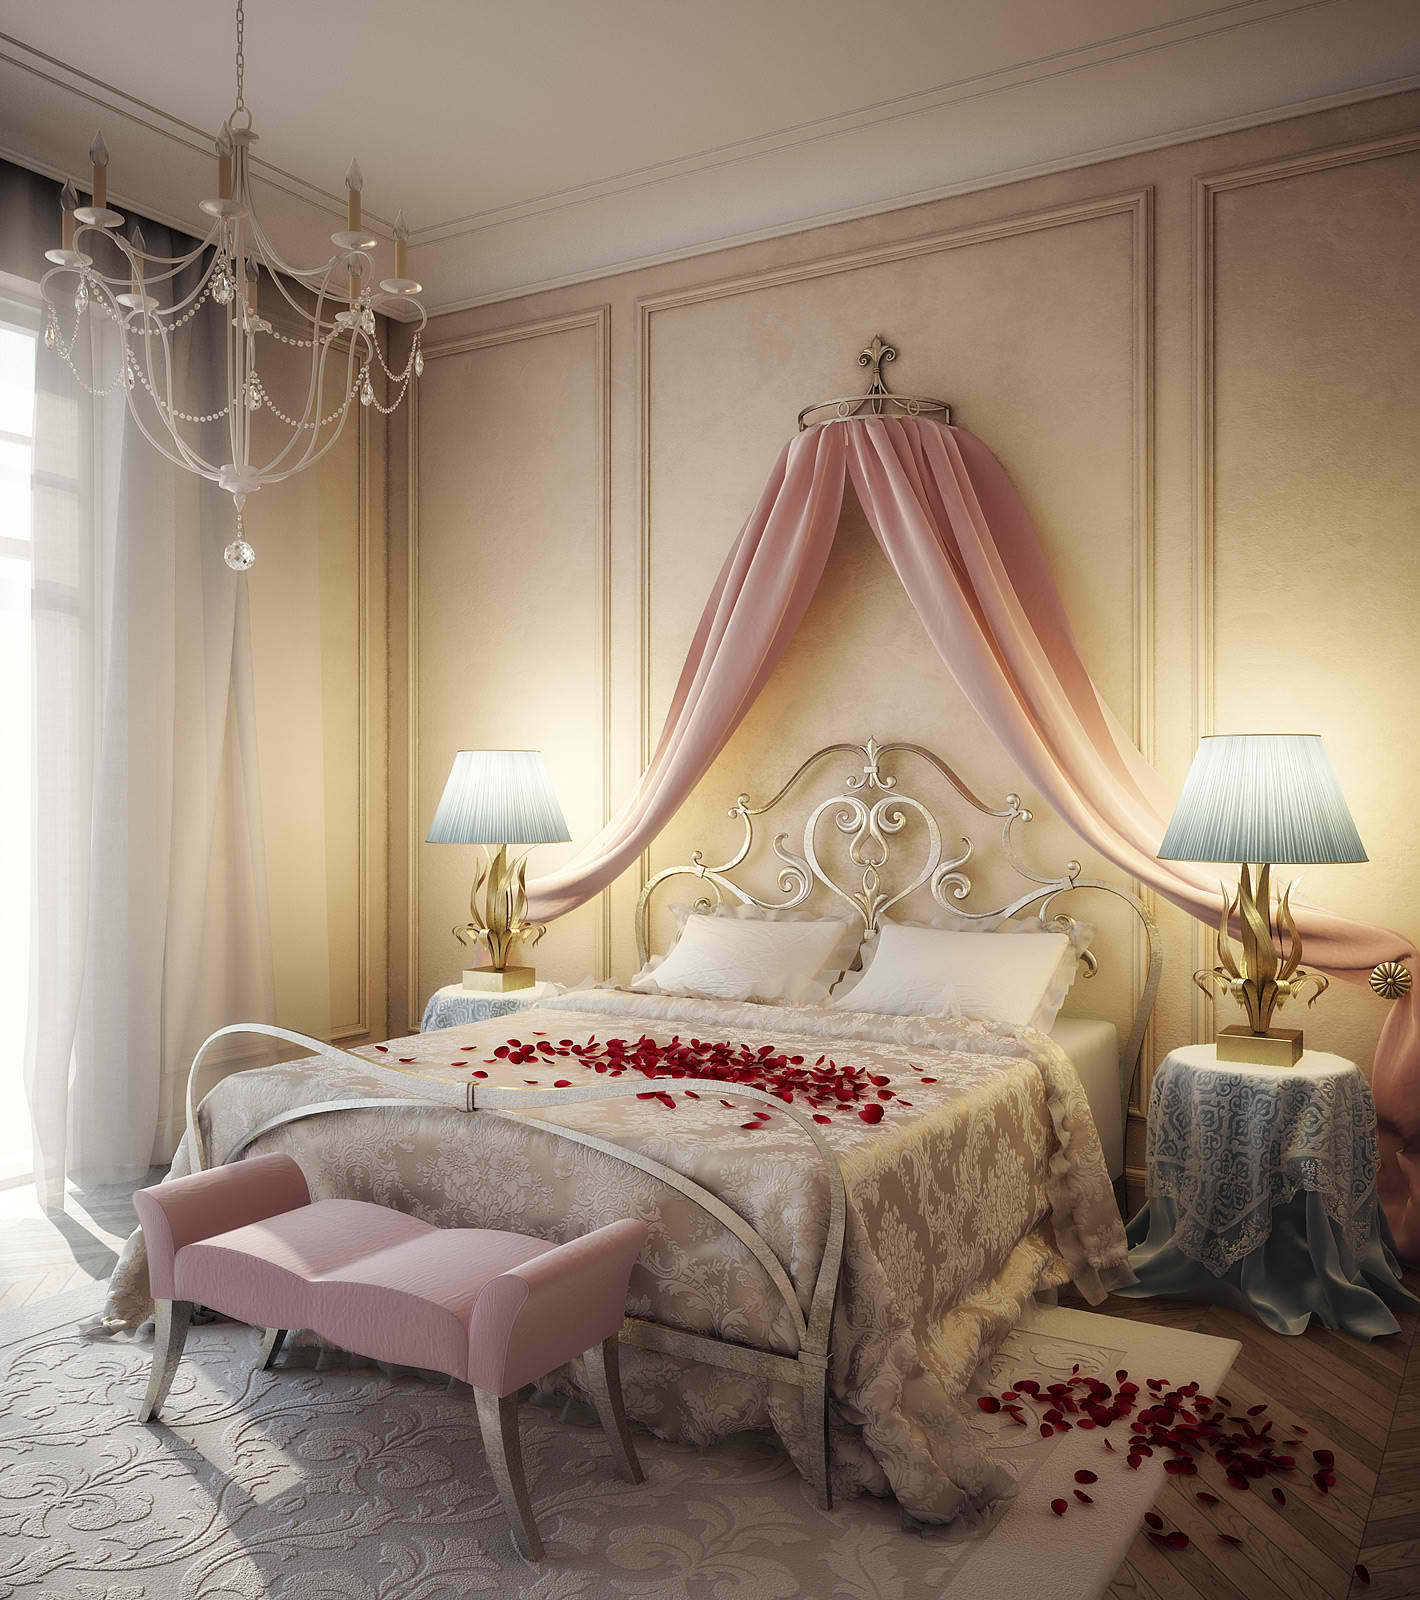 20 romantic bedroom ideas decoholic for Romantic bedroom ideas